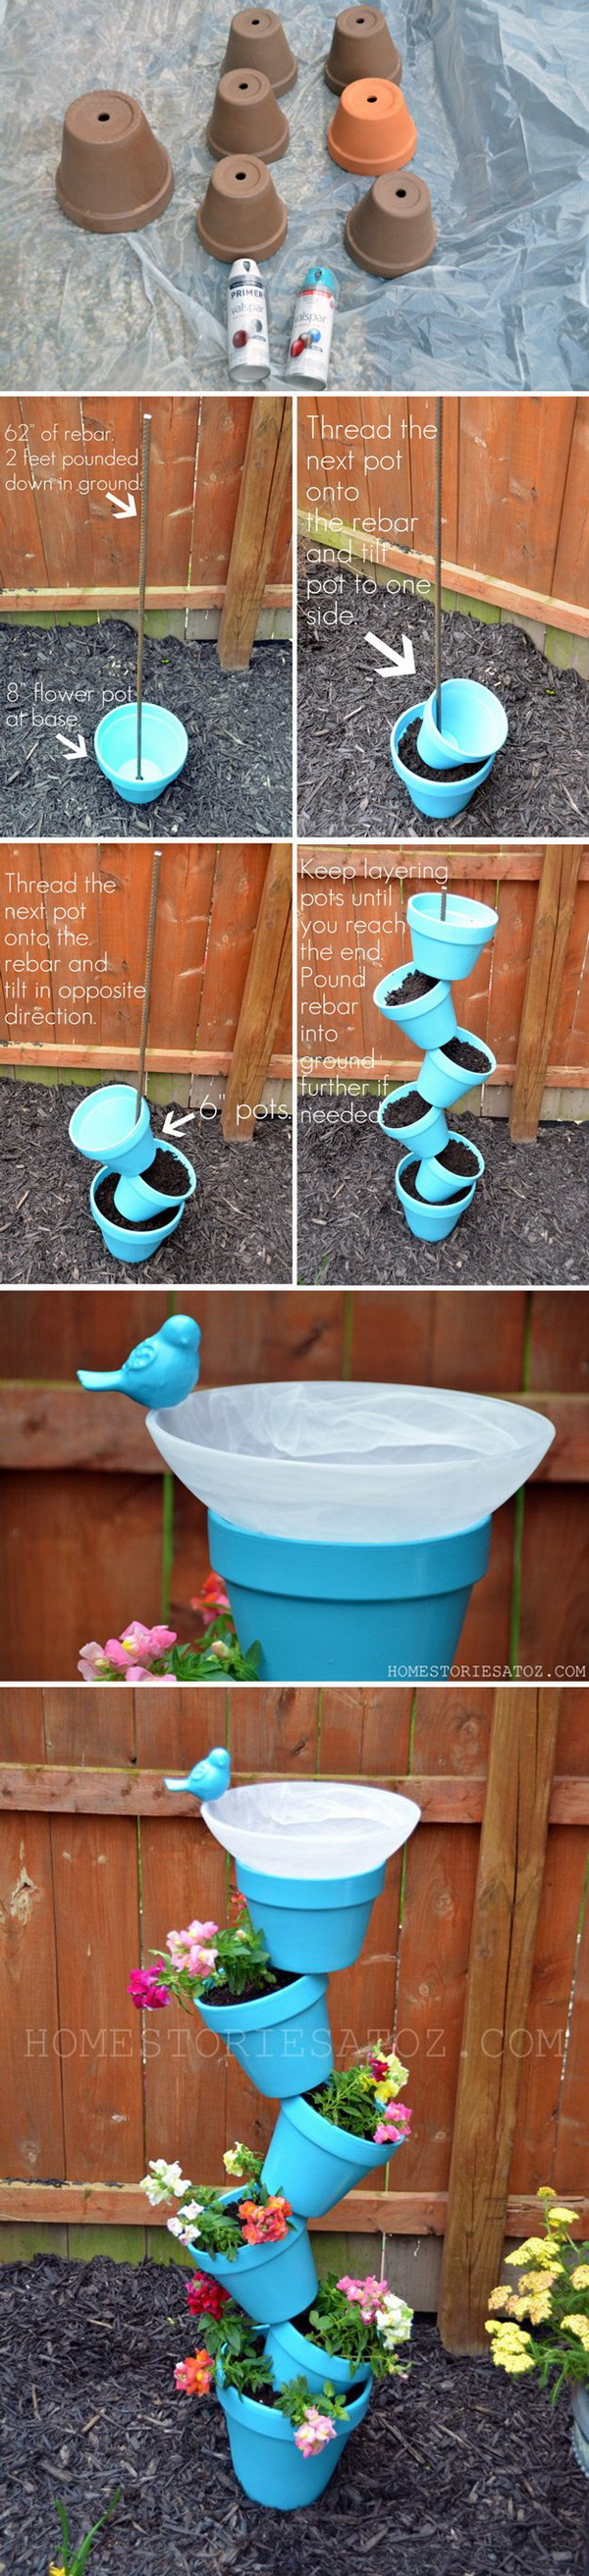 DIY Tower Garden Planter and Birds Bath: A cool planter and a nice bird bath, all in one! A great addition to your backyard!